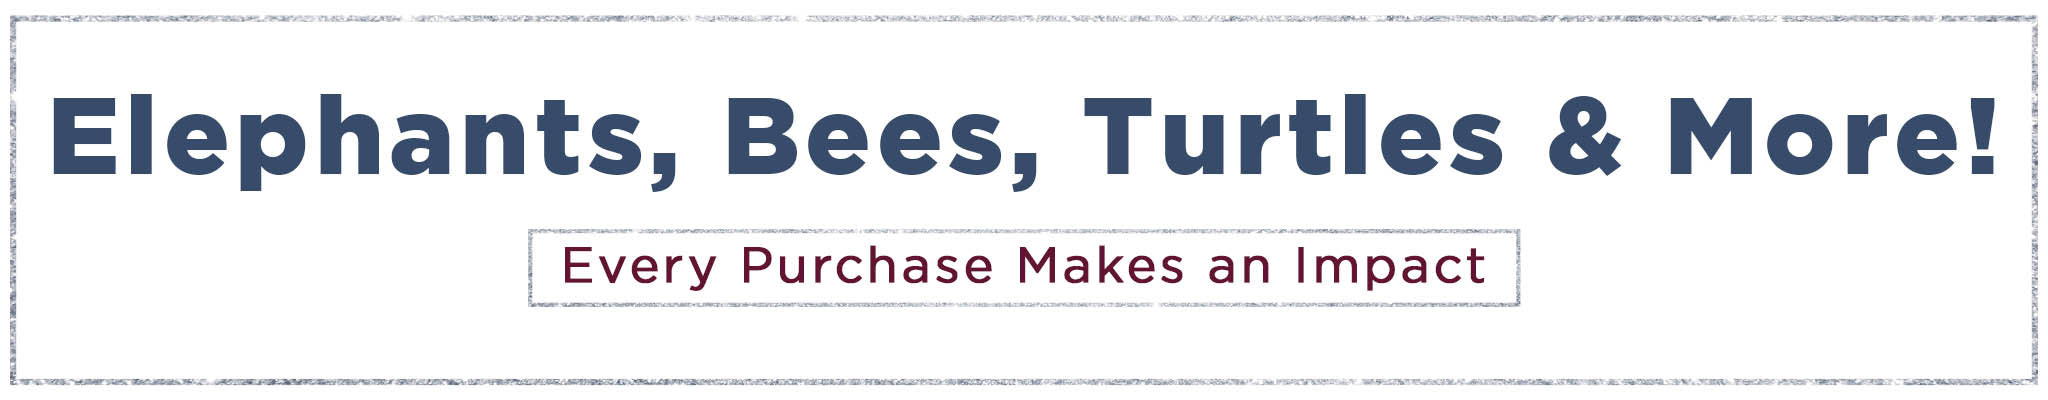 Elephants, bees, turtles & more! | Every purchase makes an impact